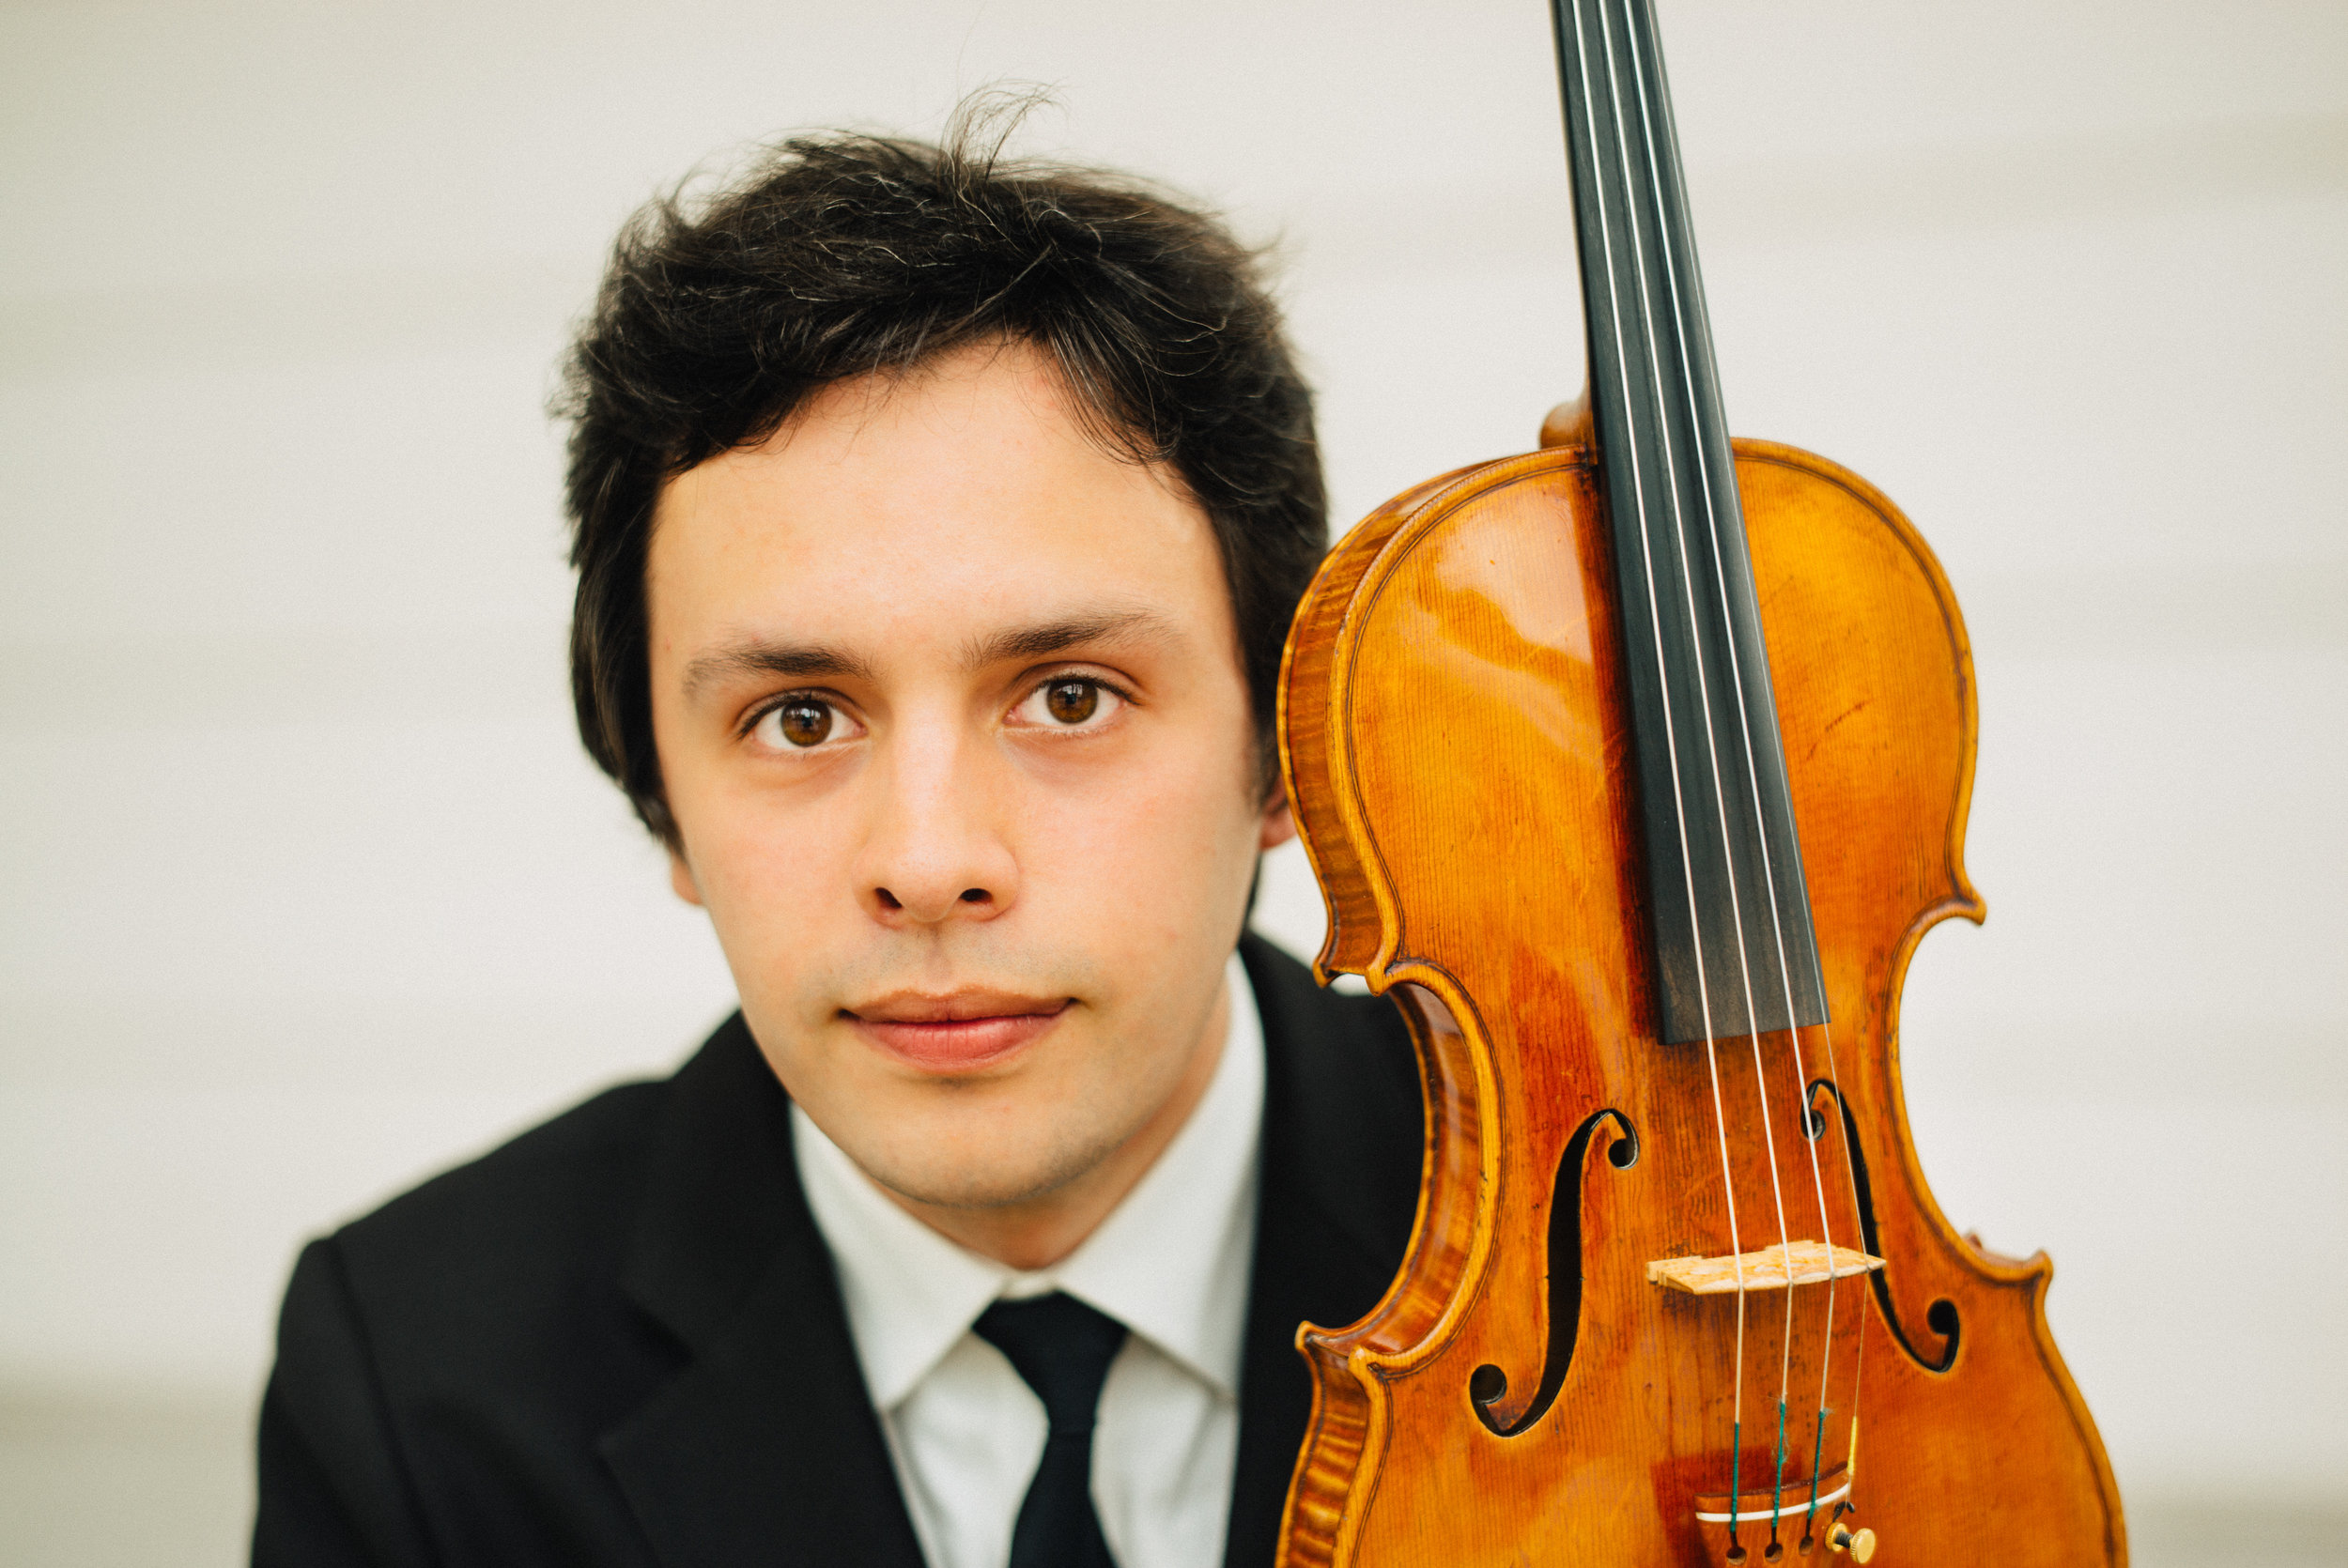 Orest Smovzh, violin - Ukrainian-born violinist Orest Smovzh is currently based in the United States.Born in Lviv - Orest started to play the violin under the guidance of his mother and Nadiya Varyanko. For the past few years he is studying with Midori Gotō and is a student at the Peabody Institute in Baltimore. Orest also studied with Mariya Futorska, Yaroslava Rivnyak, Dmytro Tkachenko, Qian Zhou at Tchaikovsky National Music Academy of Ukraine in Kyiv, Yong Siew Toh Conservatory of Music in Singapore, and USC Thornton School of Music in Los Angeles.Orest collaborated in chamber performances with members of Orchestre des Champs-Élysées, Suntory Hall Chamber Music Academy, pianists Thomas Hoppe, Albert Tiu, cellist Michael Kannen, also working on a diverse chamber repertoire with Bernard Lanskey and Jeffrey Kahane. As a soloist he took part in historically informed performances with Masaaki Suzuki as well as participated in several outreach projects with Midori Gotō in Mexico and USA.Apart from performing, he is a co-founder of Dzenzelivka Classical Week - first Ukrainian chamber music festival in a village, where he was the Artistic Director for 8 years; Collegium Musicum Lviv - one of the most vibrant concert organizations of Ukraine; Melaka Classics – innovative classical music project in Malaysia.Winner of 2015 Tadeusz Wroński Violin Solo Competition and the finalist of 2018 George Enescu Violin Competition, Orest has performed on instruments by Guarneri del Gesù, Jean-Baptiste Vuillaume, Carlo Landolfi, Lorenzo Storioni and Stefan-Peter Greiner, loaned by late Mr Rin Kei Mei and private collections.He also had the pleasure of lessons with Vadym Repin, Ilya Gringolts, Ivry Gitlis, Gyorgy Takacs-Nagy, Nigel North, Pierre Amoyal, Nam Yun Kim, Petru Munteanu, Kszysztof Węgrzyn, Takashi Shimizu, David Takeno and Norman Fischer.Orest's artistic geography includes numerous countries in Europe, Asia, North America and Australia..